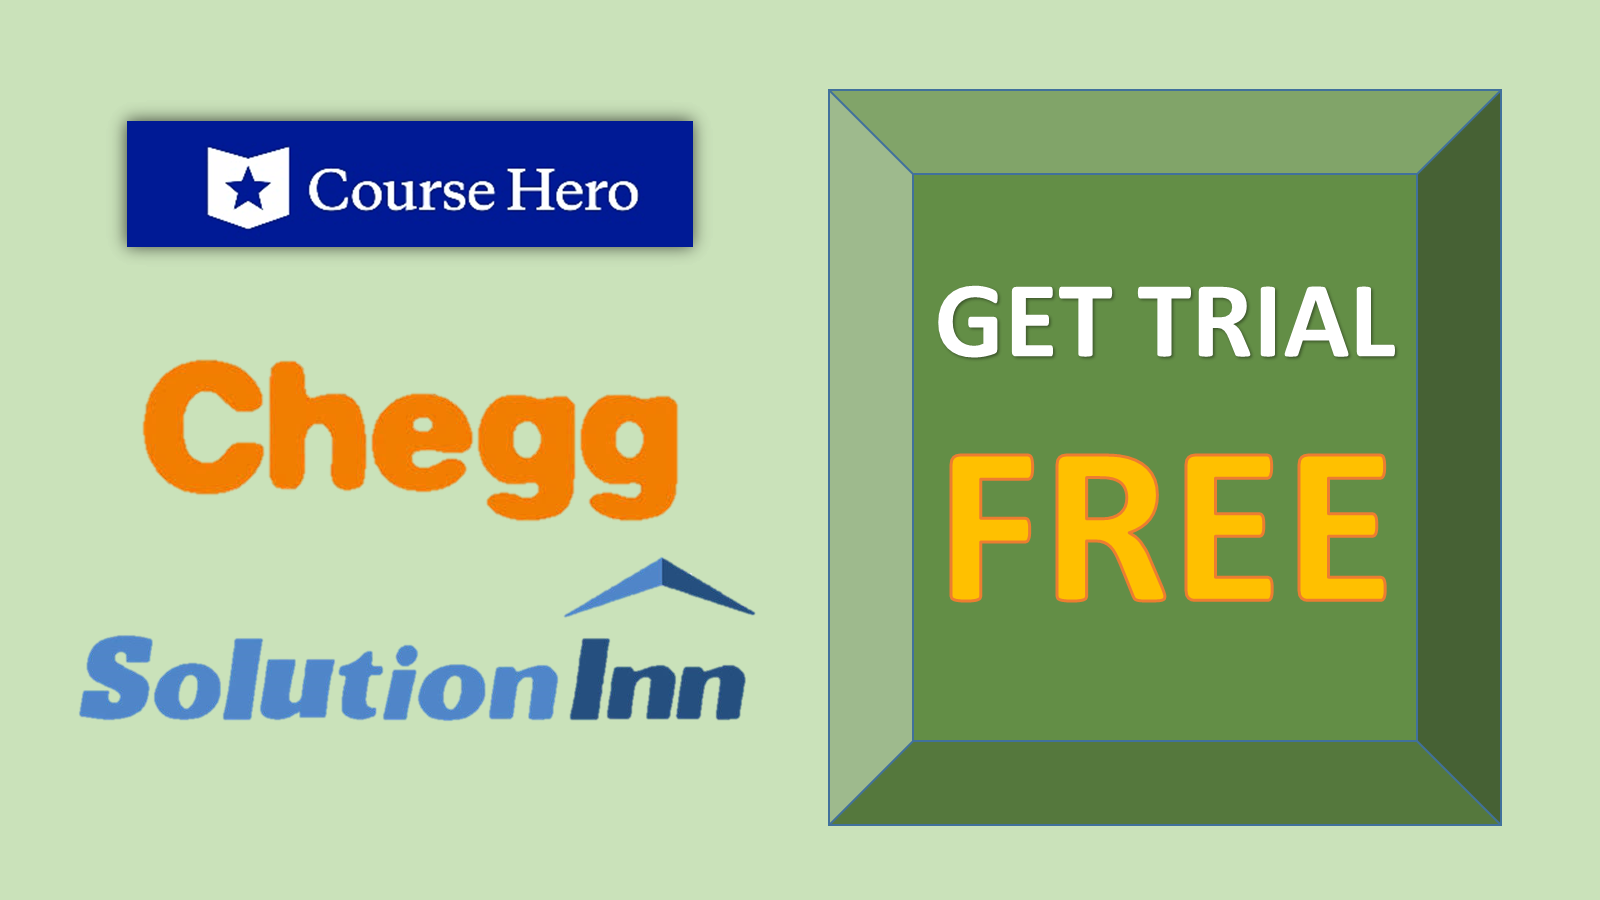 See free answers with chegg, solutioninn free trial